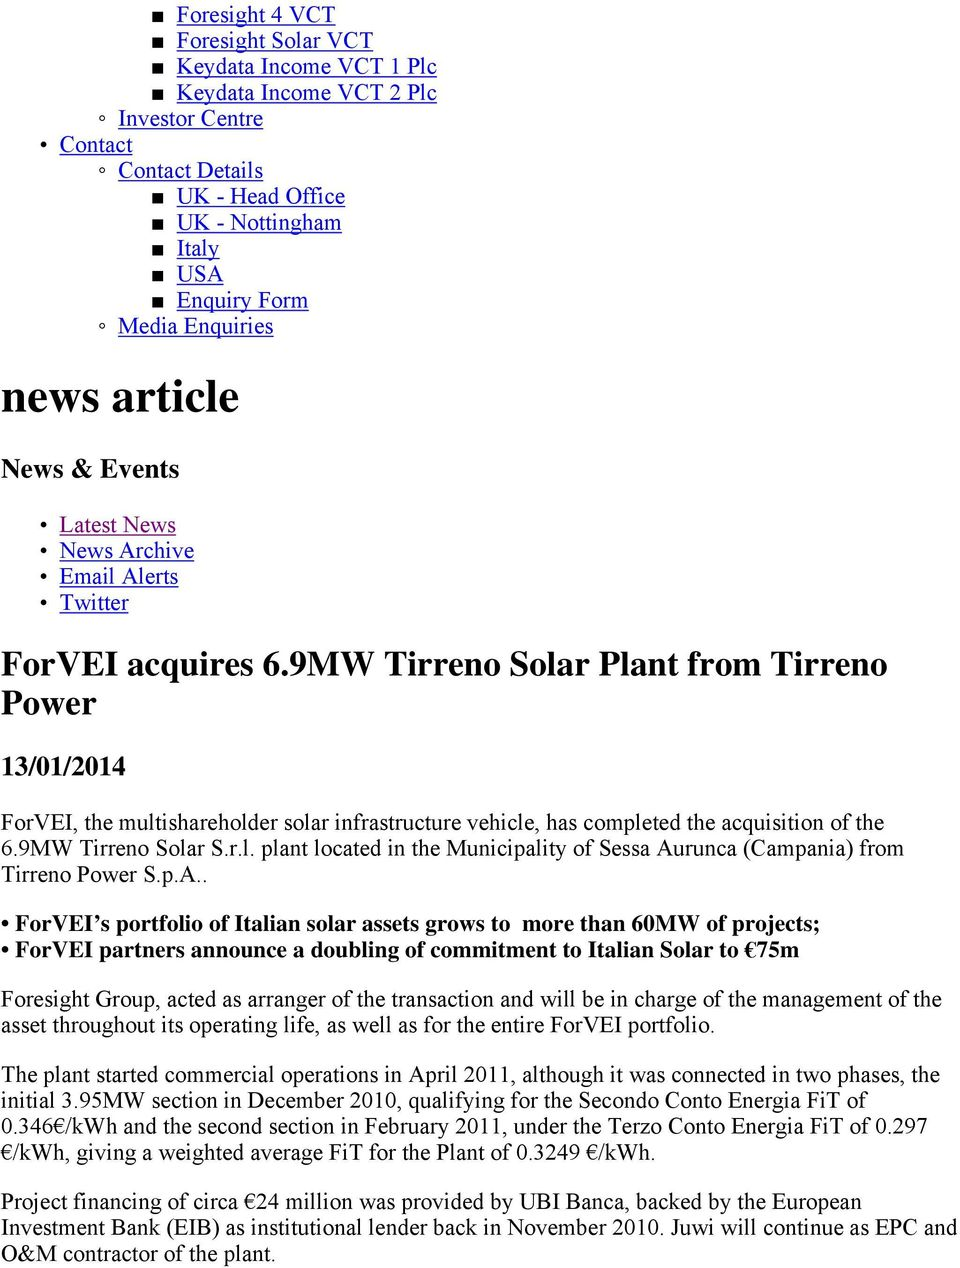 9MW Tirreno Solar Plant from Tirreno Power 13/01/2014 ForVEI, the multishareholder solar infrastructure vehicle, has completed the acquisition of the 6.9MW Tirreno Solar S.r.l. plant located in the Municipality of Sessa Aurunca (Campania) from Tirreno Power S.